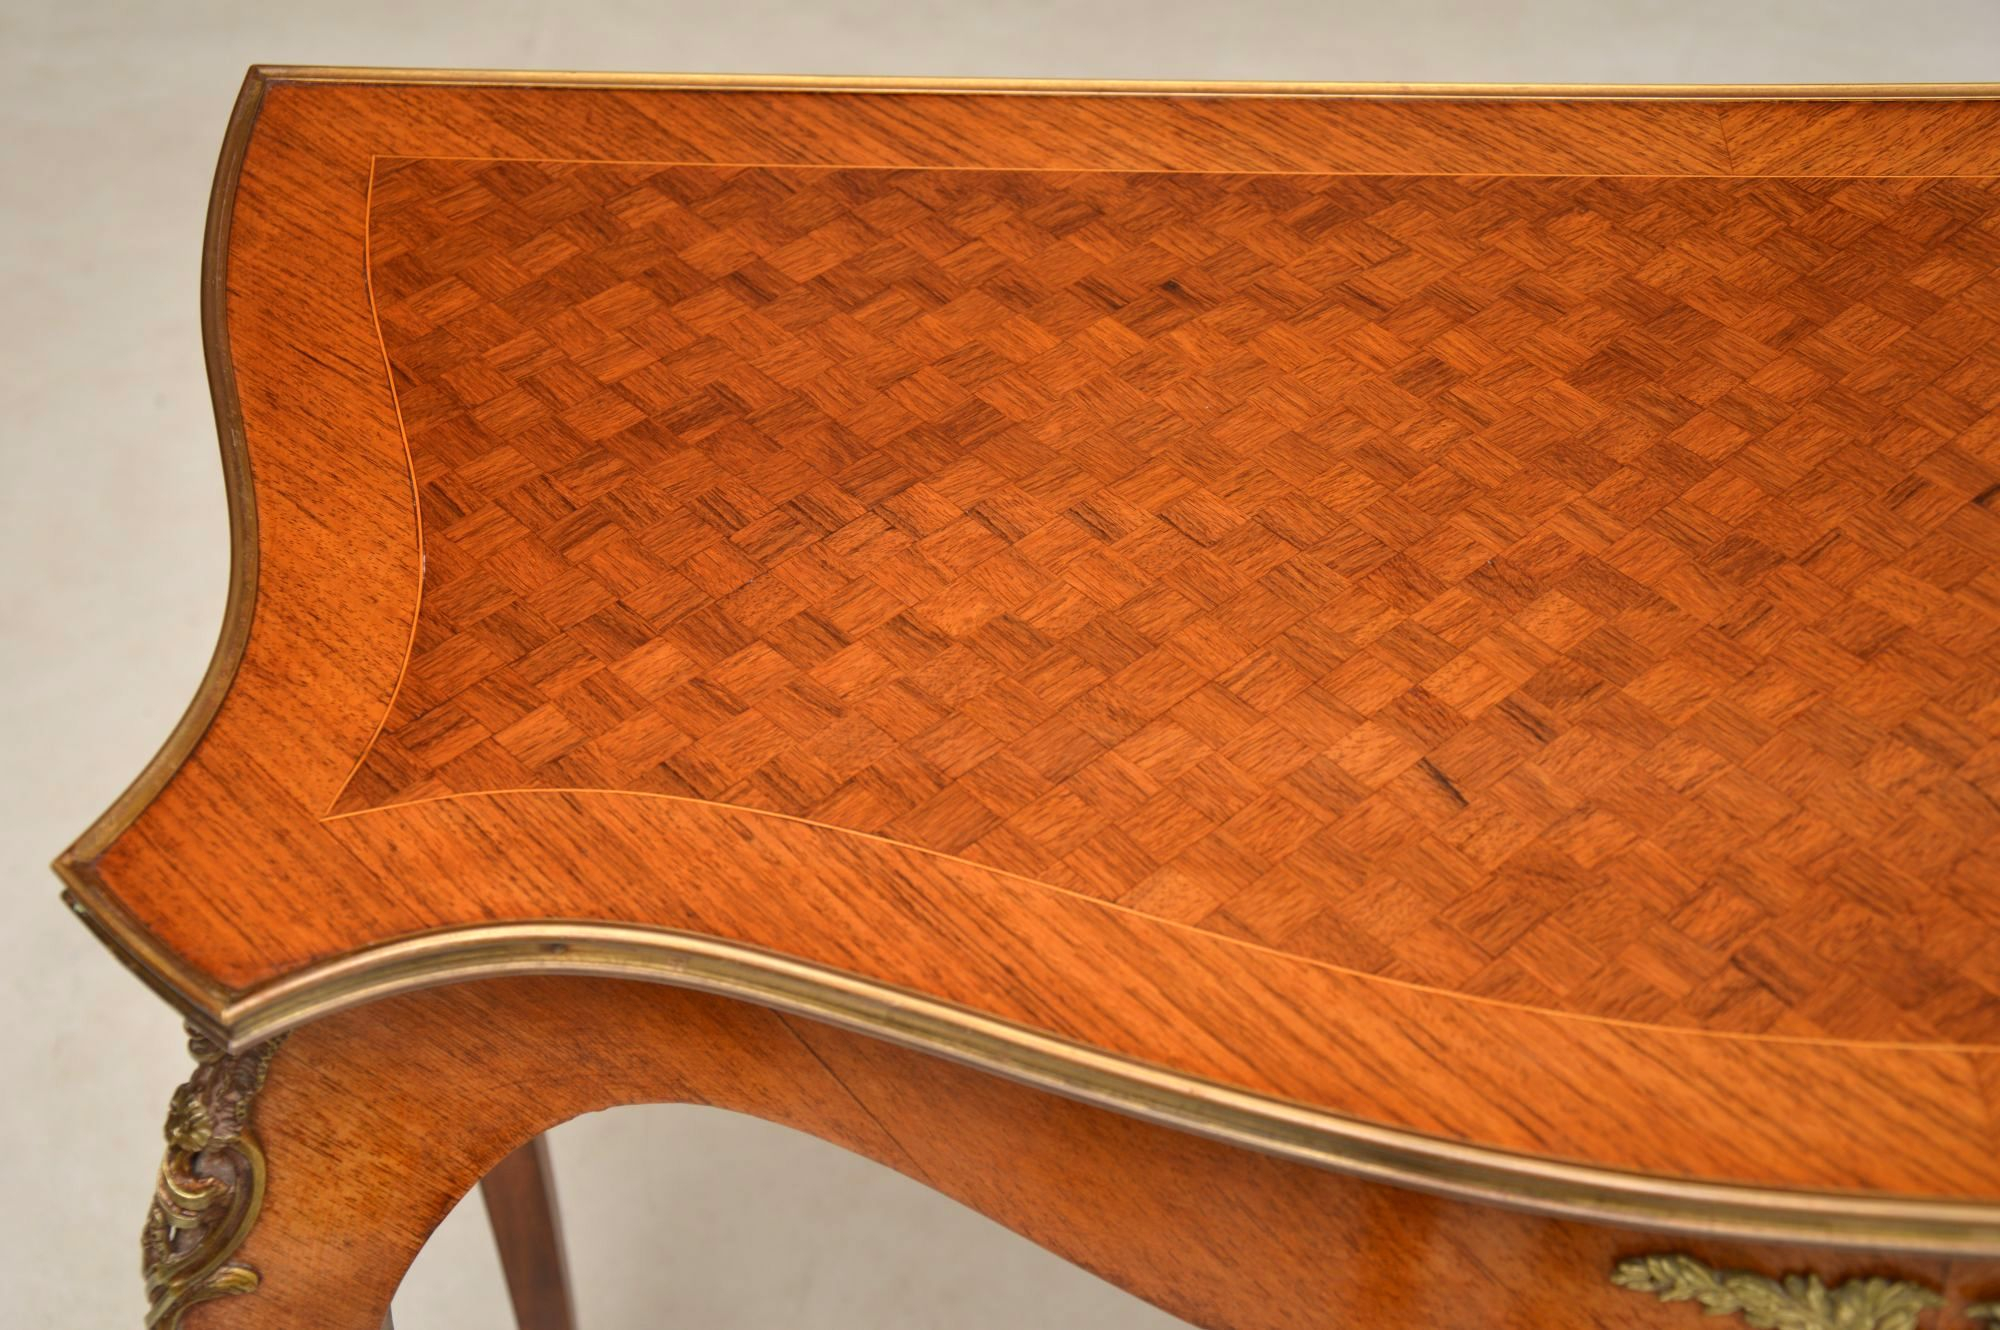 Antique French Inlaid Parquetry Console Table | Marylebone Antiques Within Orange Inlay Console Tables (View 6 of 30)